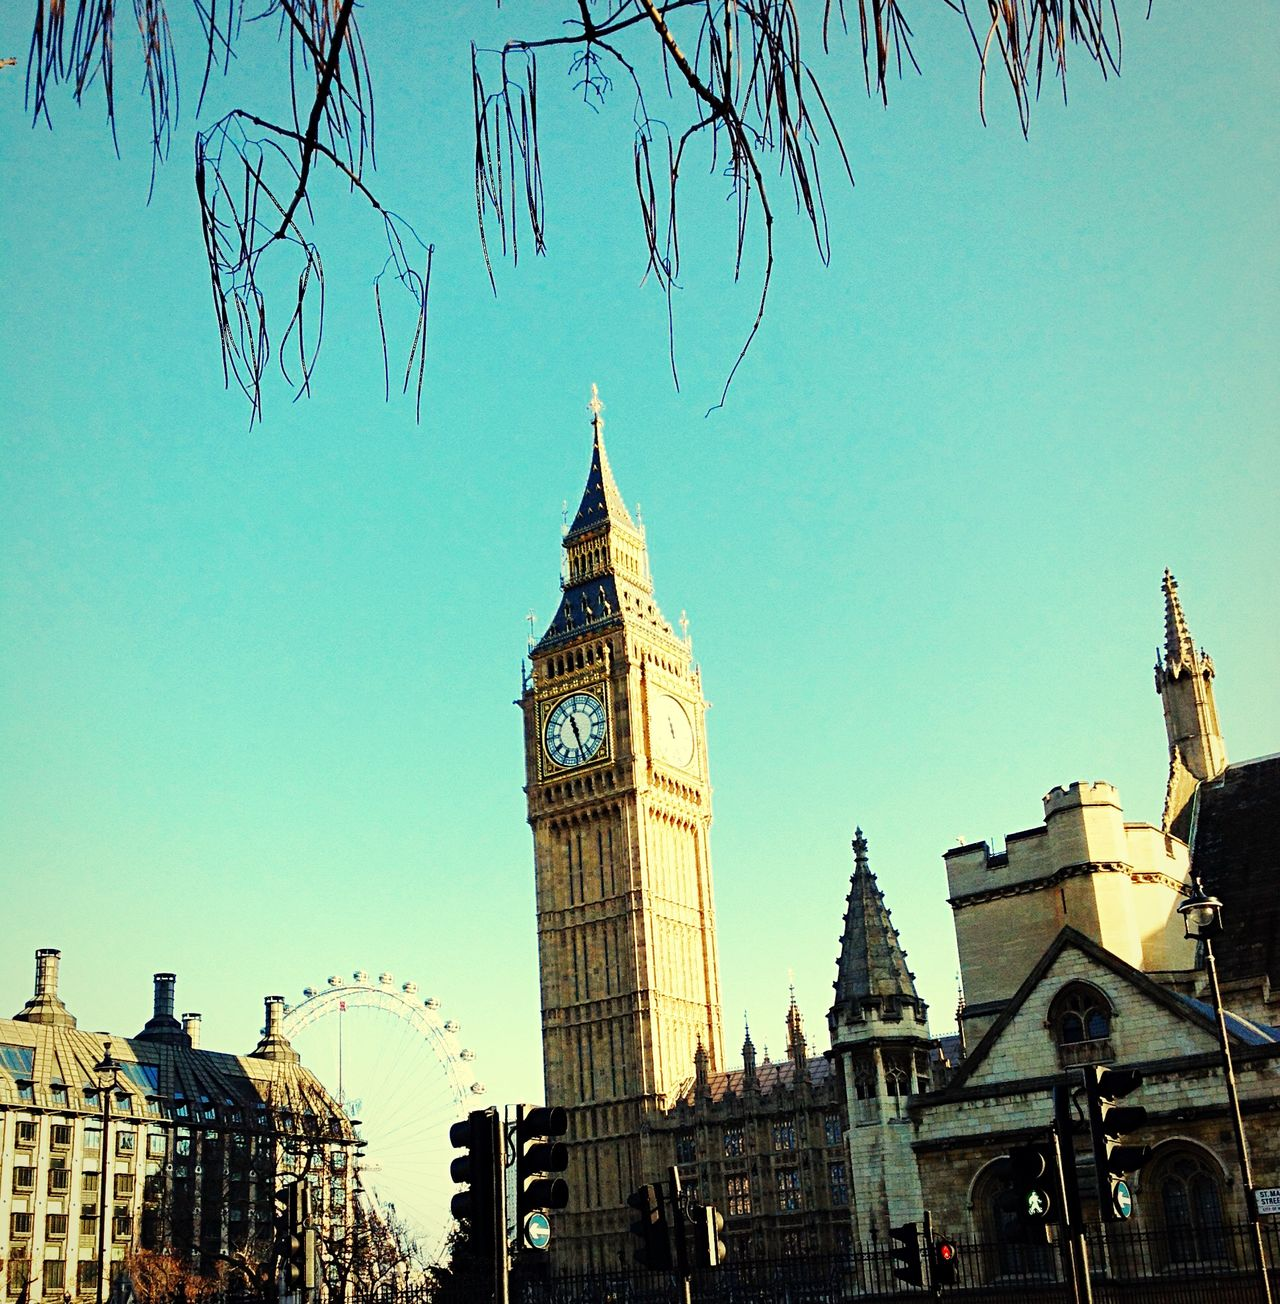 Awesome view on the Big Ben London Taking Pictures First Eyeem Photo Taking Photos Check This Out Traveling Holiday Bigben Turquoise By Motorola Check This Out!